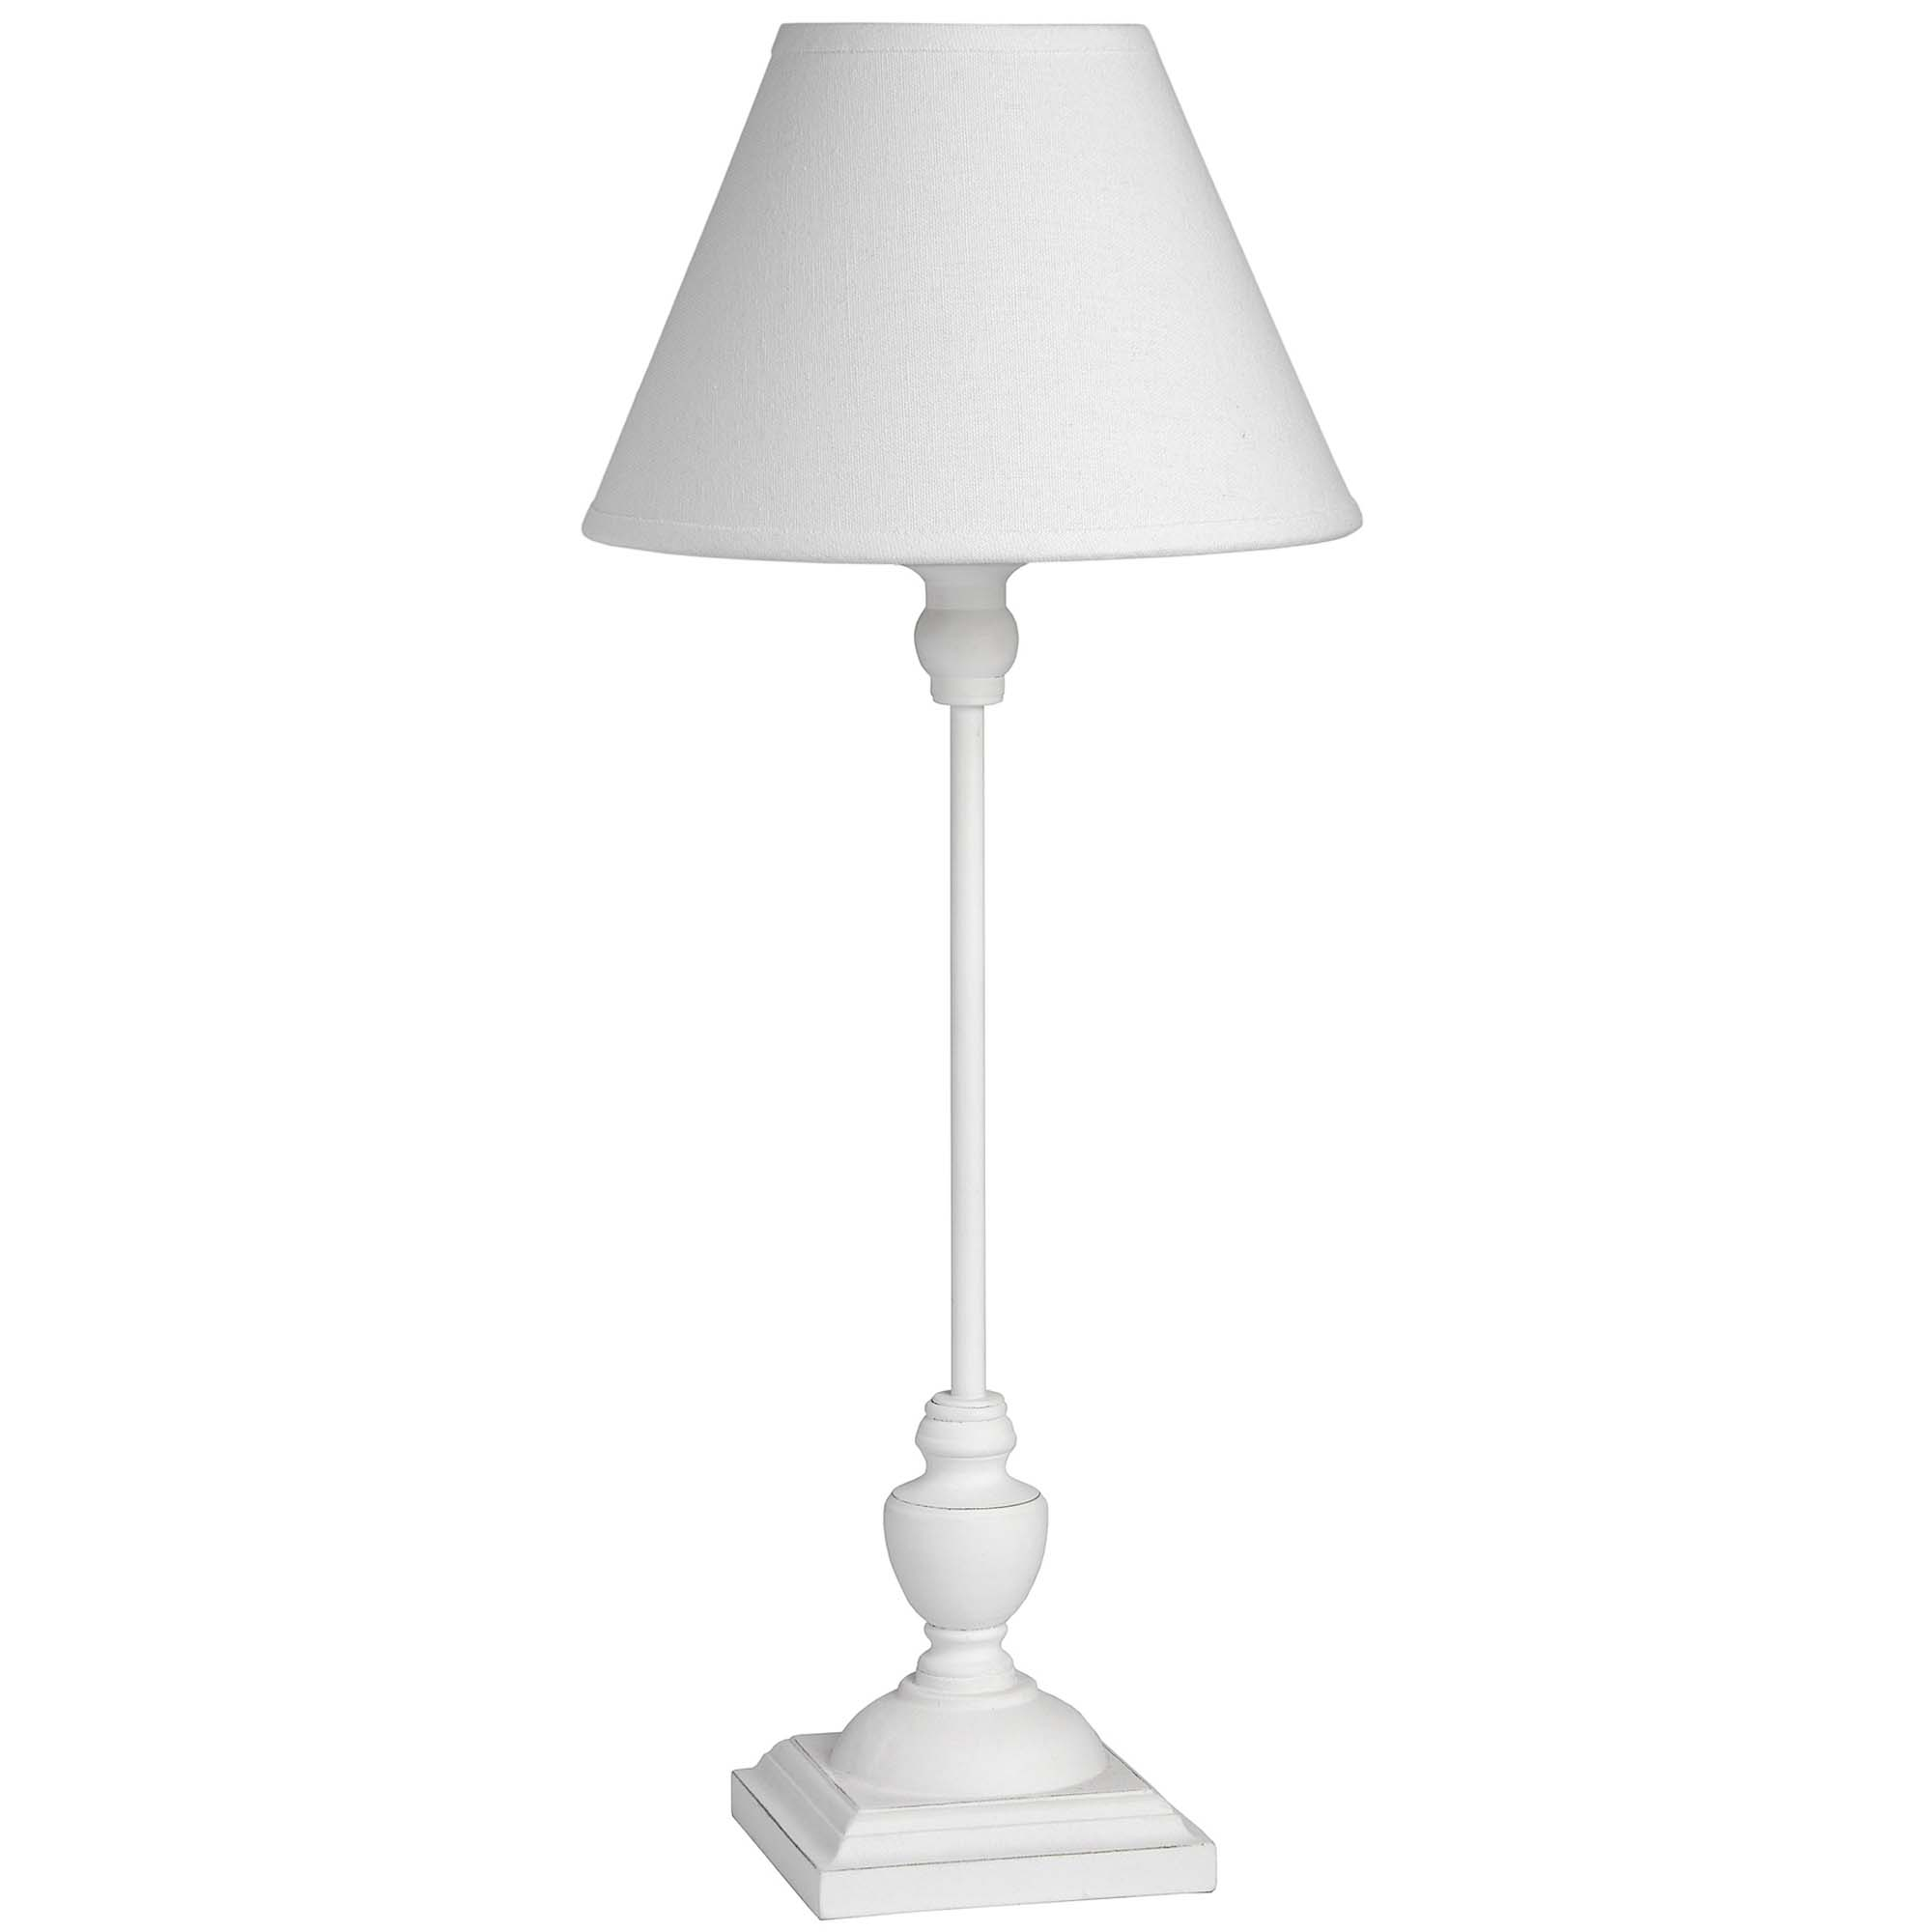 Symi Slim Antique French Style Table Lamp Homesdirect365